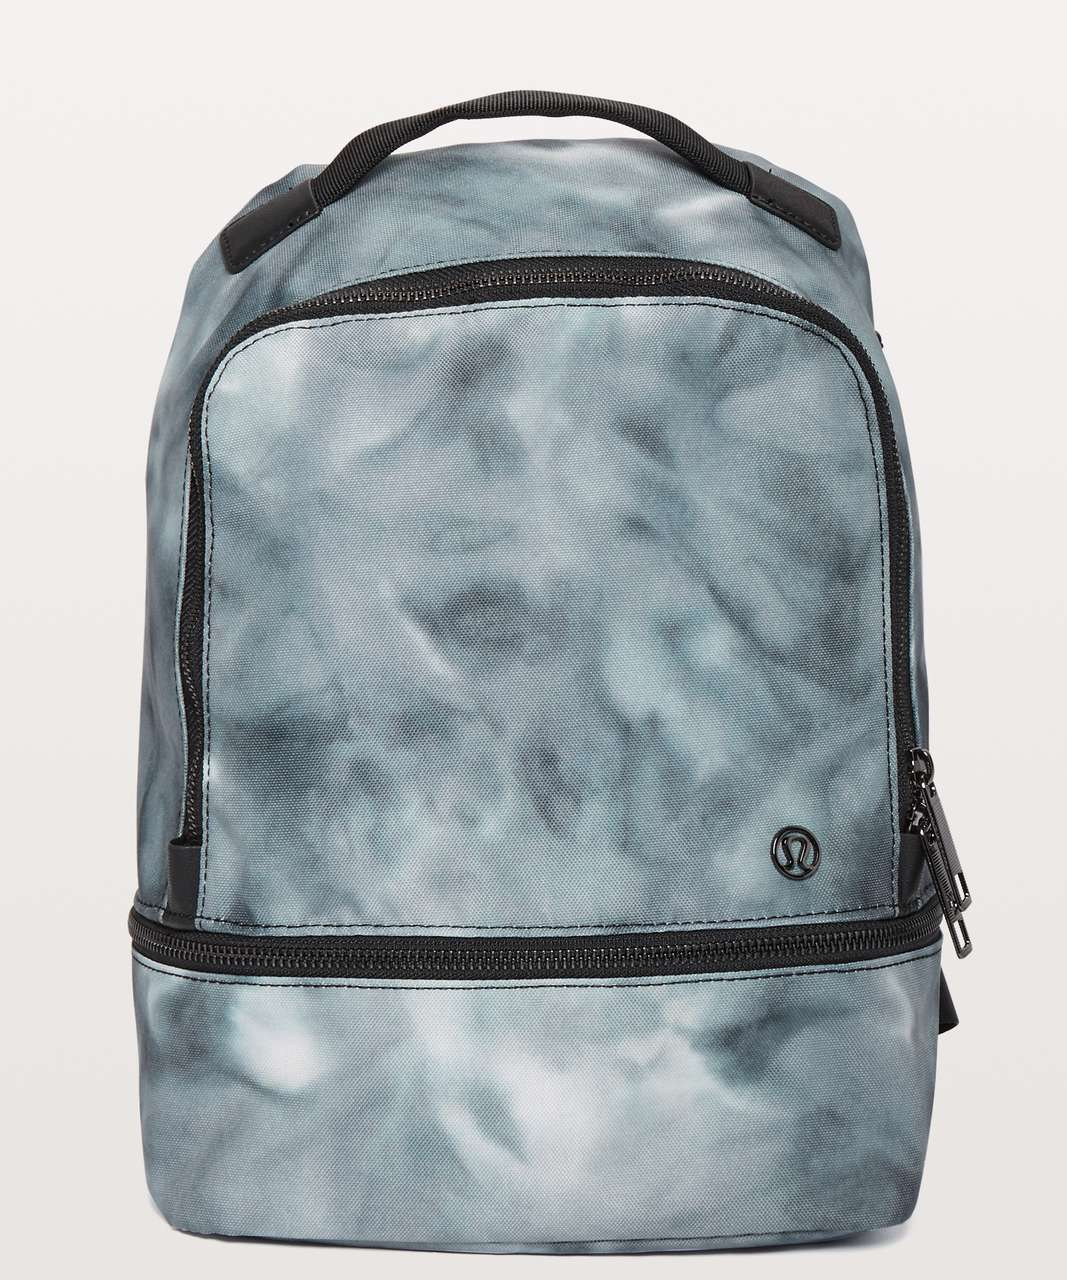 Lululemon City Adventurer Backpack Mini *10L - Spray Dye Grey Multi